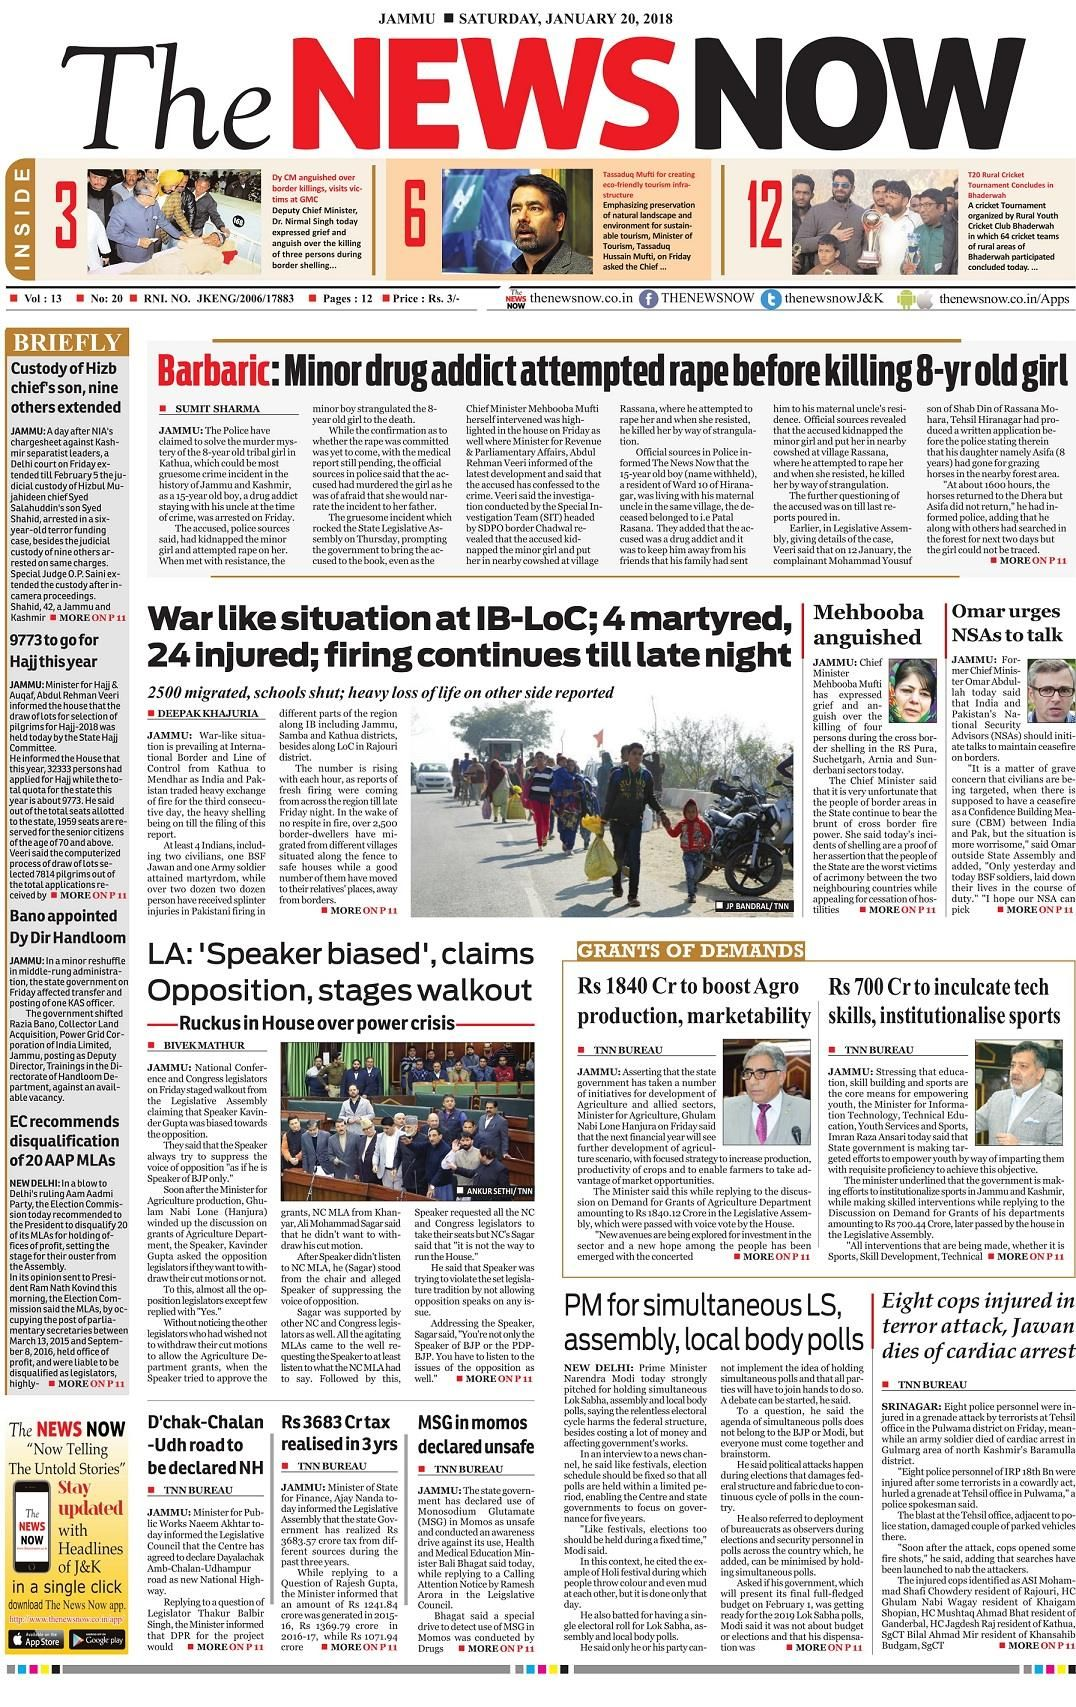 Pin By The News Now On Thenewsnow Frontpage Jammu Omar Abdullah Newspaper Publishing